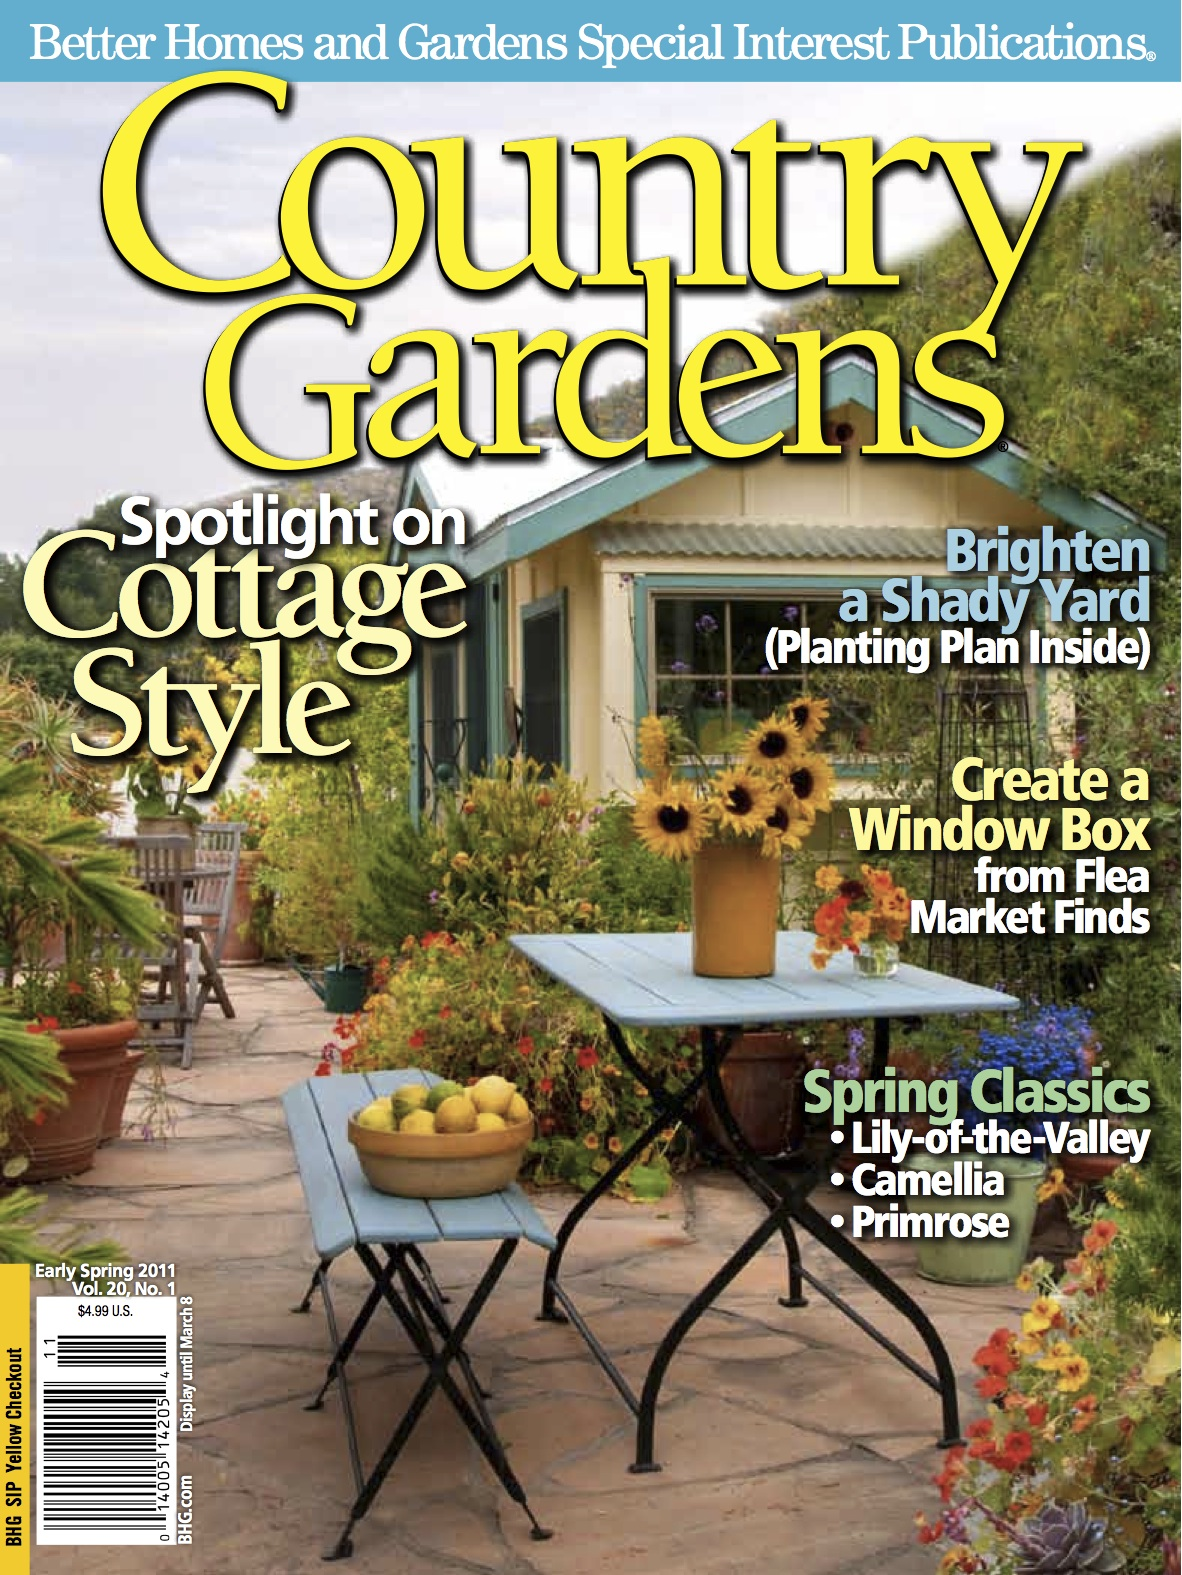 Sharon lovejoy country gardens magazine features our Spring cottage magazine